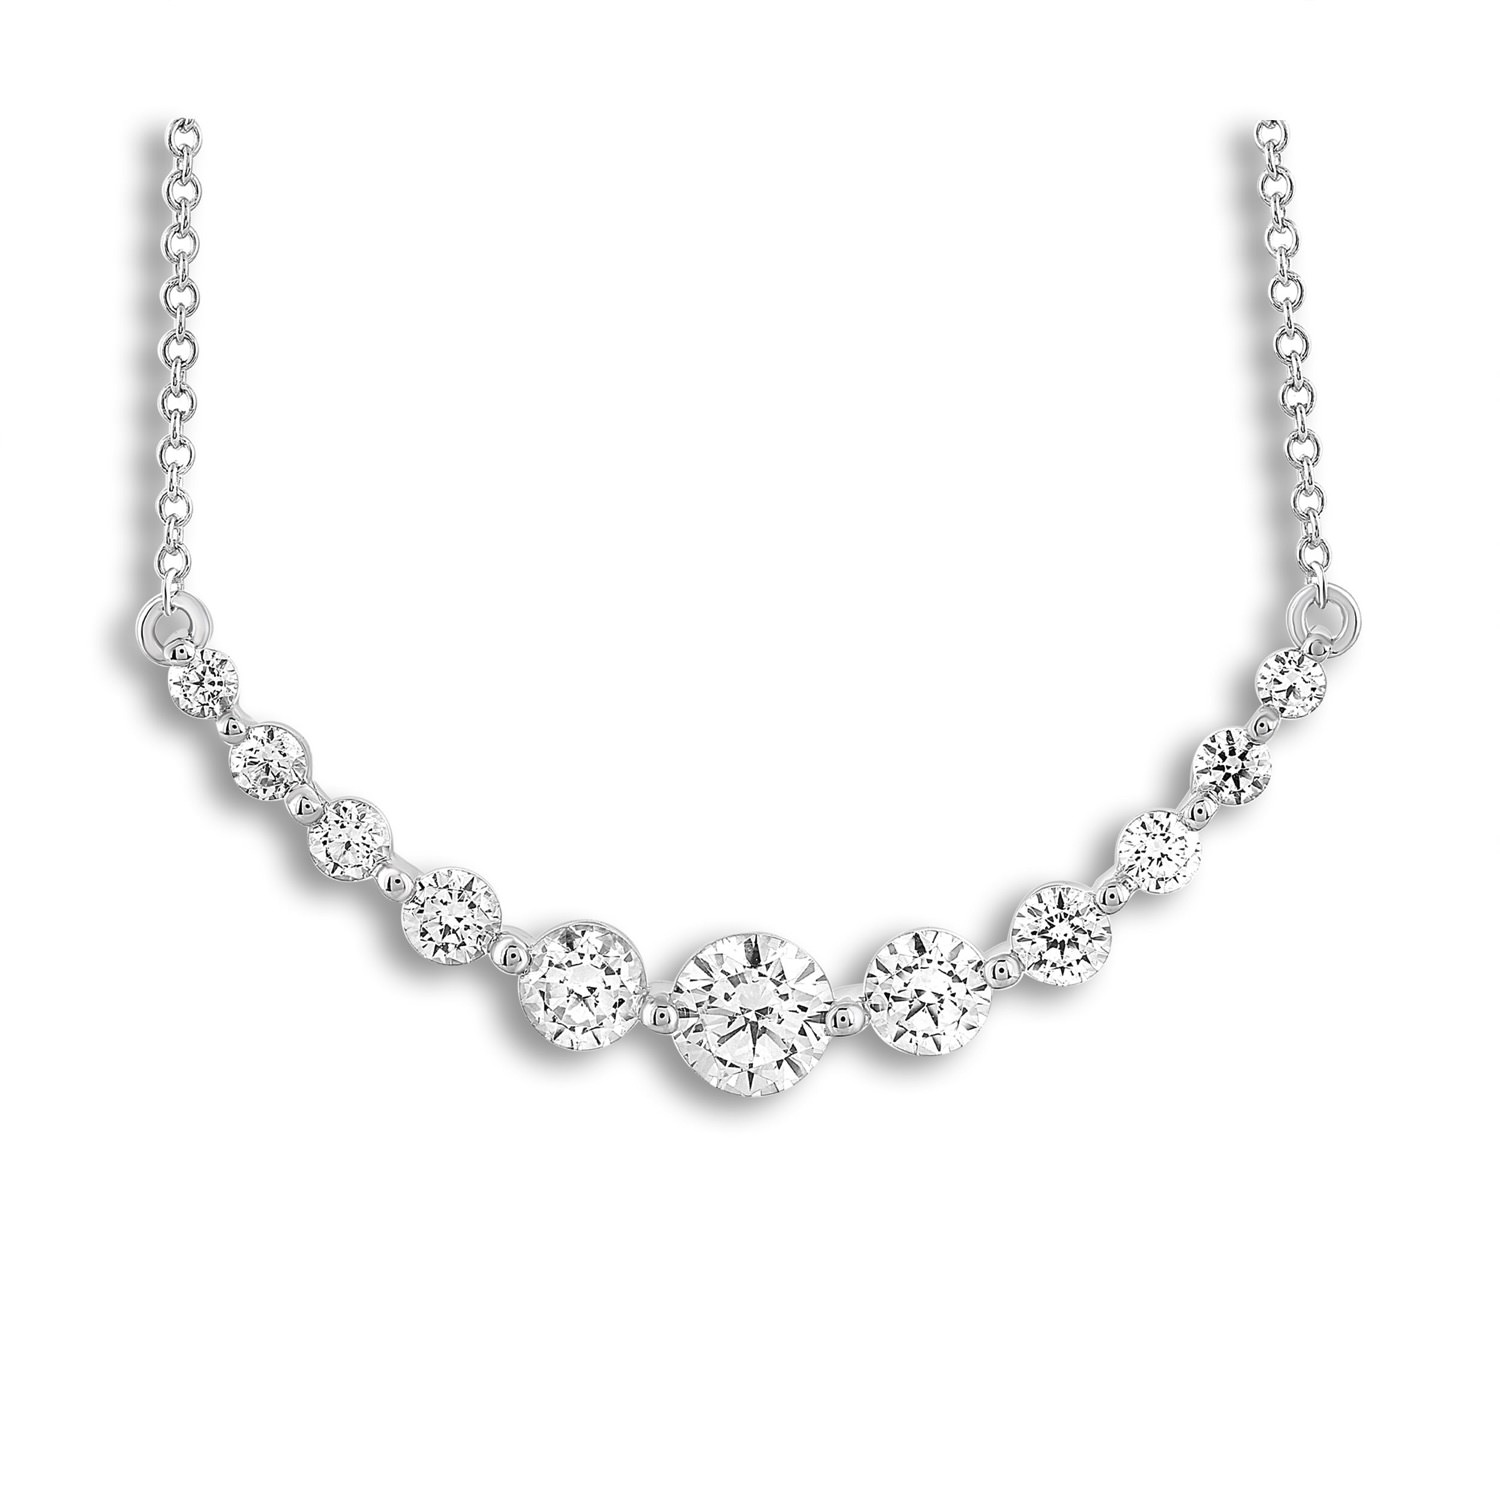 Leo Diamond Necklace 1 ct tw Diamonds 14K White Gold